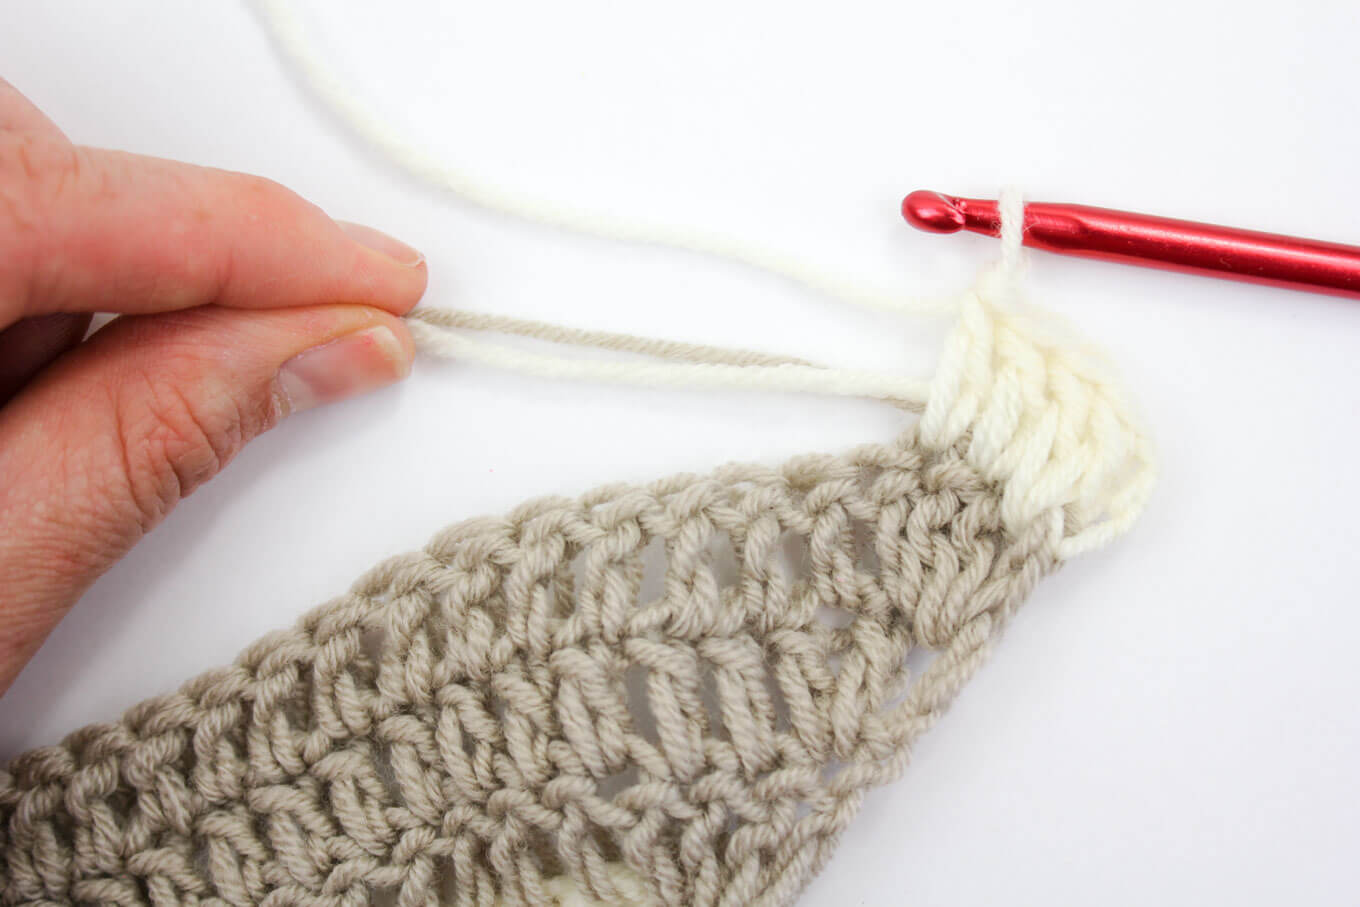 How to crochet over ends in crochet. Minimizes ends you have to weave in at the end!